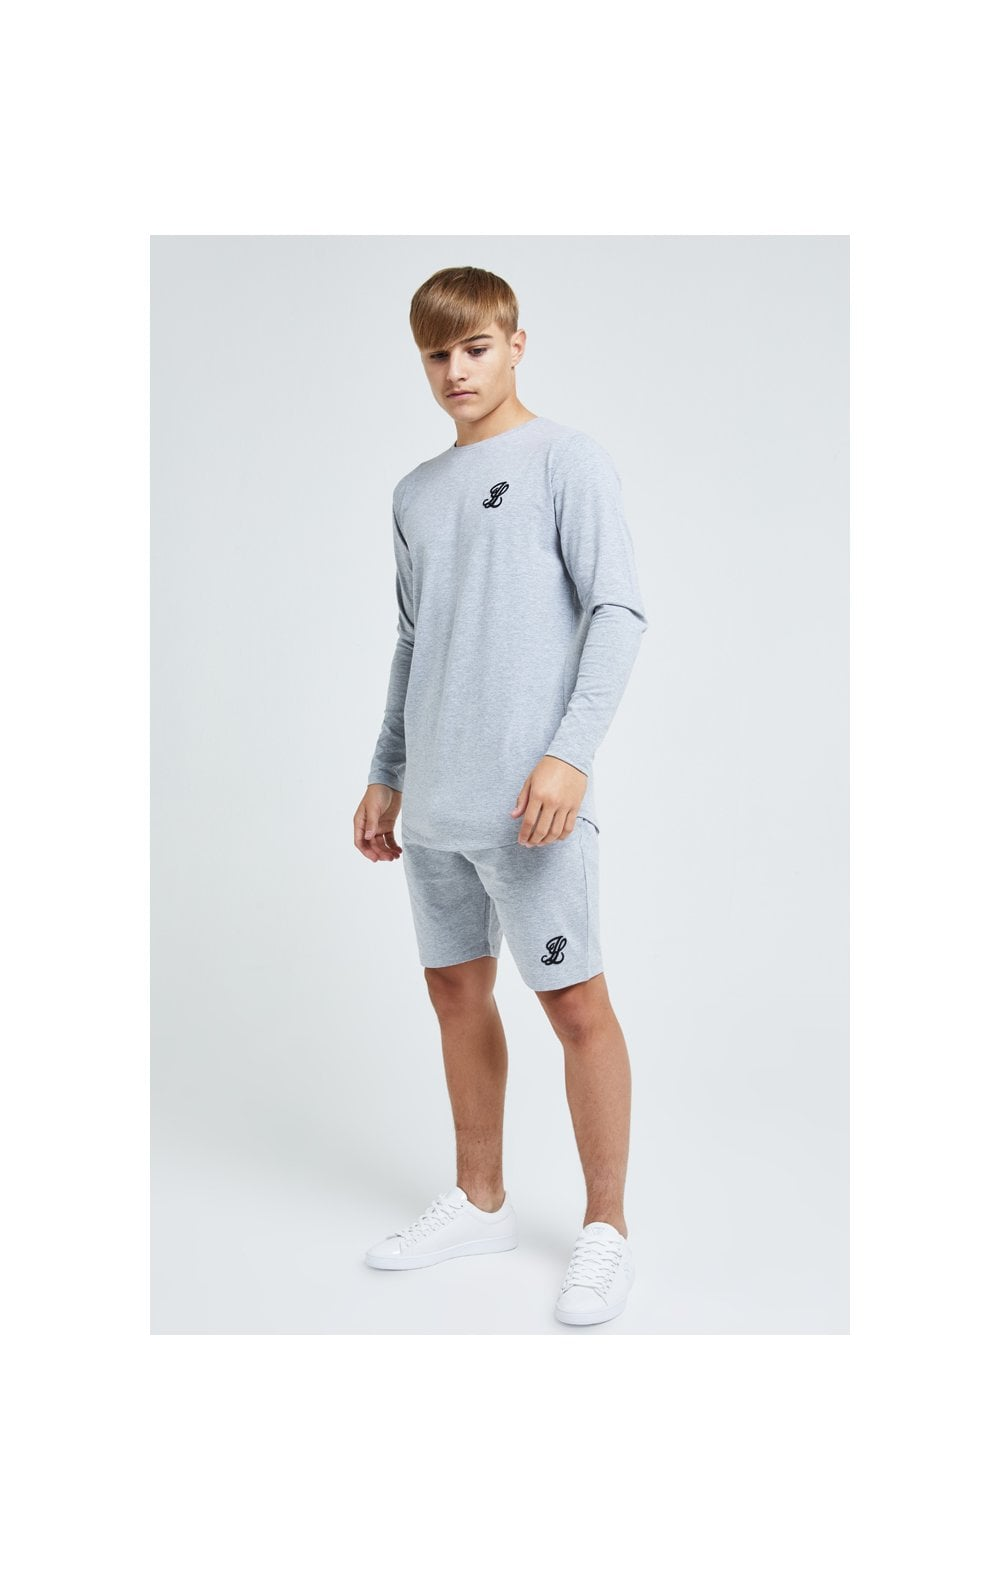 Illusive London L/S Core Tee - Grey Marl (3)